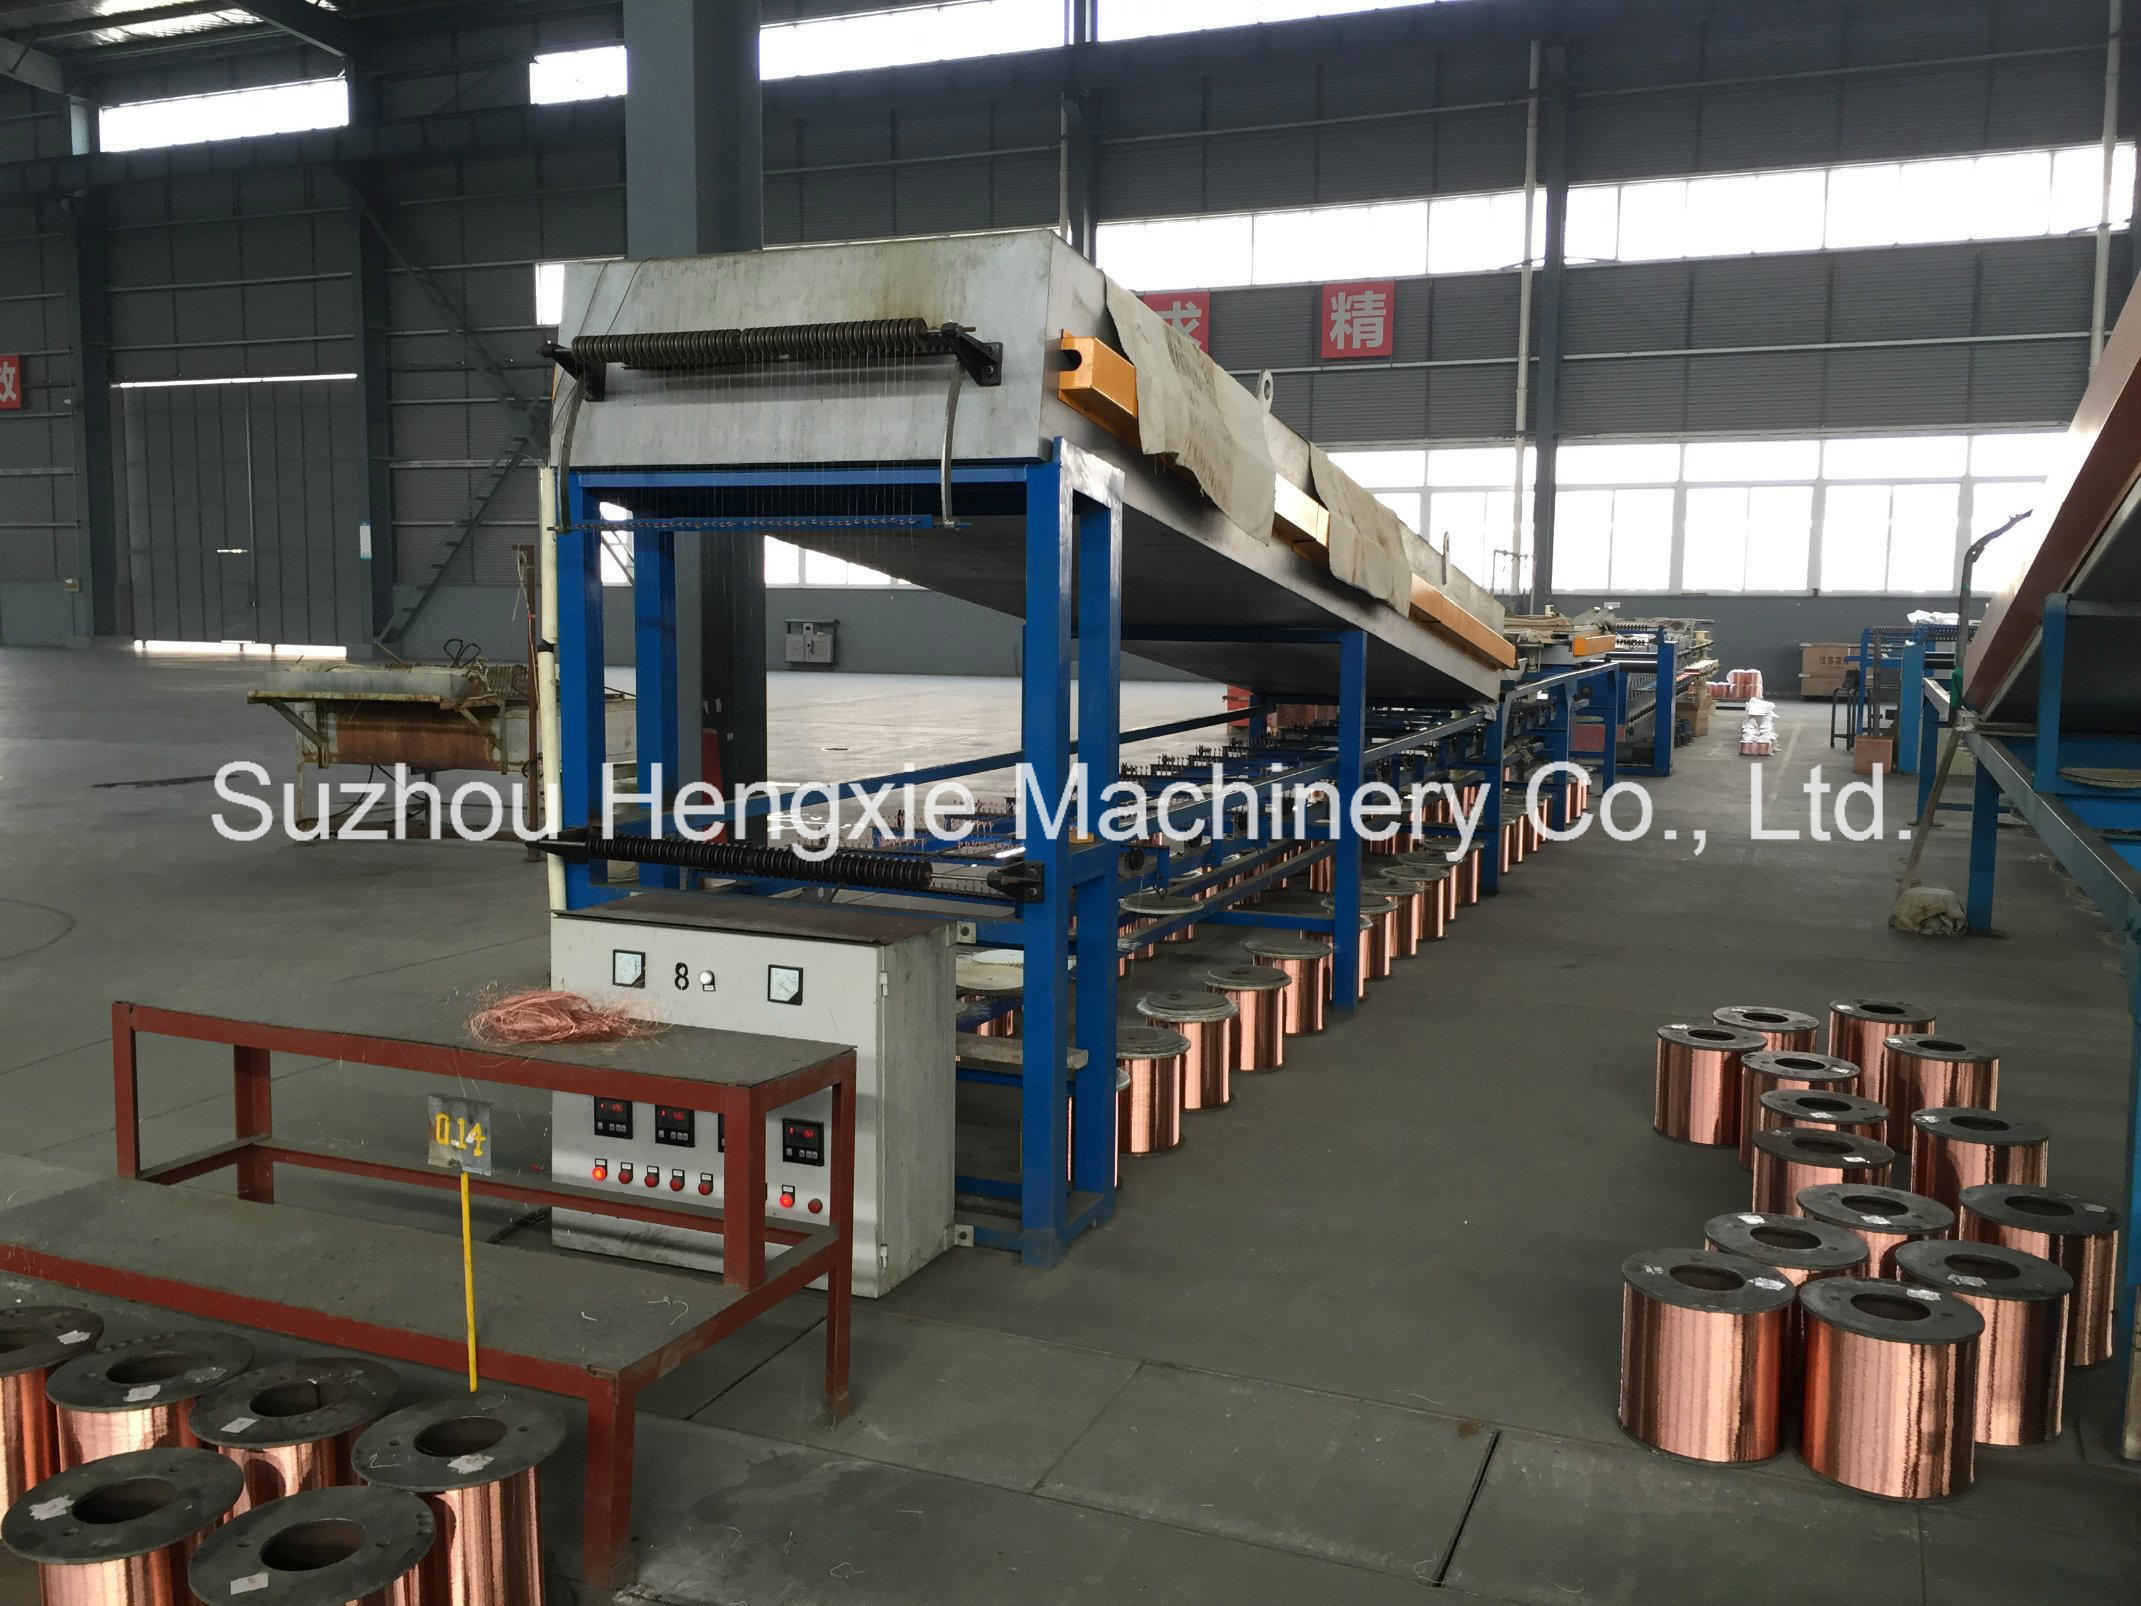 China Hxe-40h Copper Wire Annealing Machine with Four Heads Spooler ...